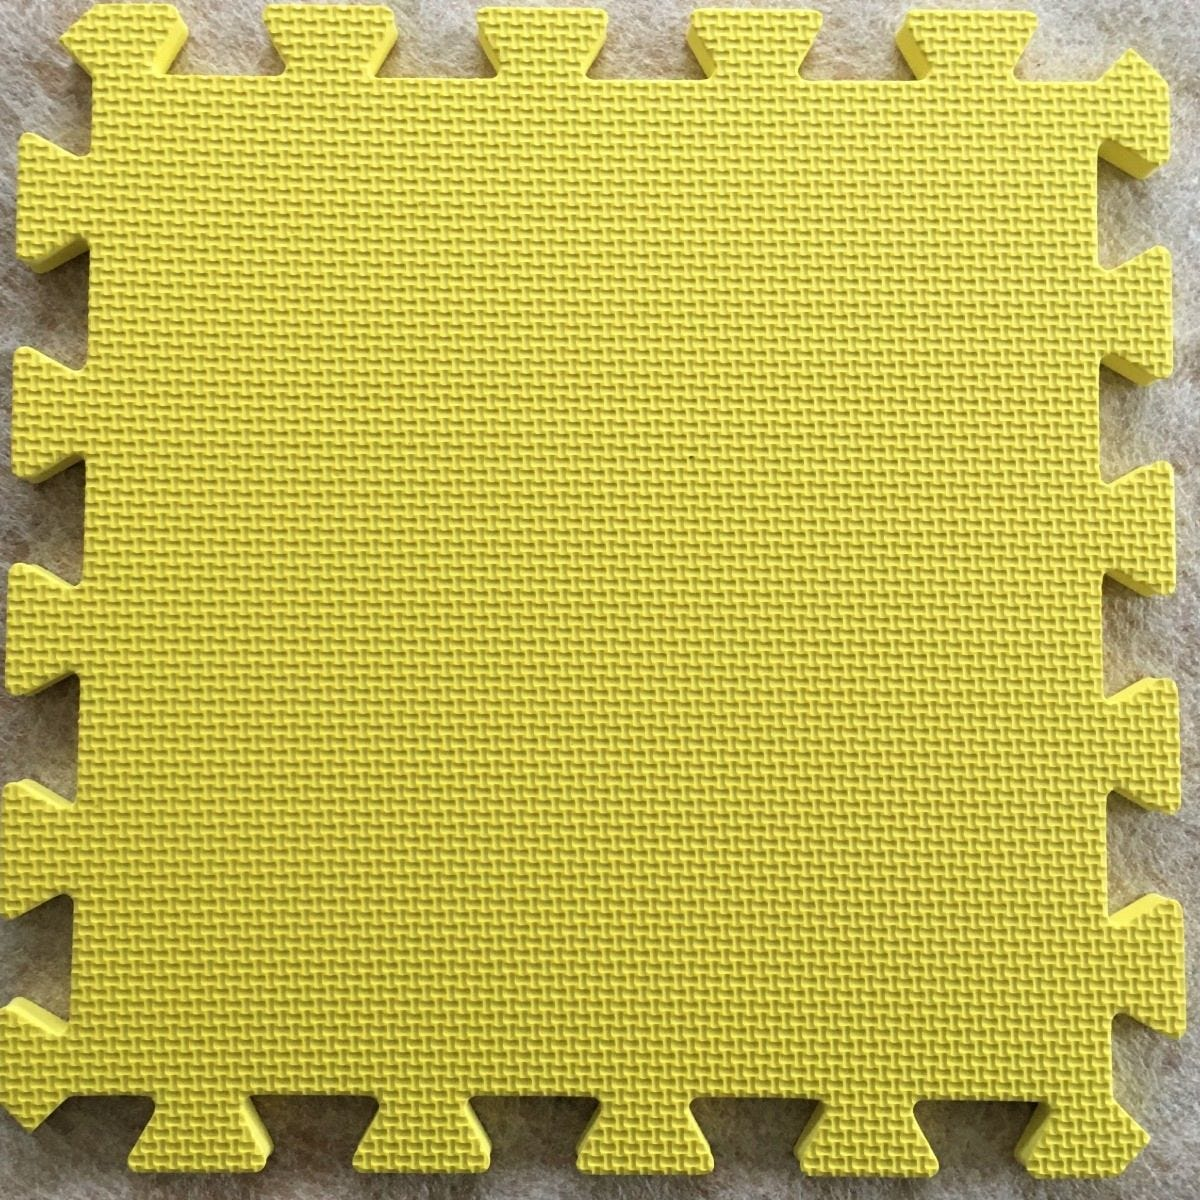 Warm Floor Tiling Kit - Playhouse 9 x 10ft Yellow